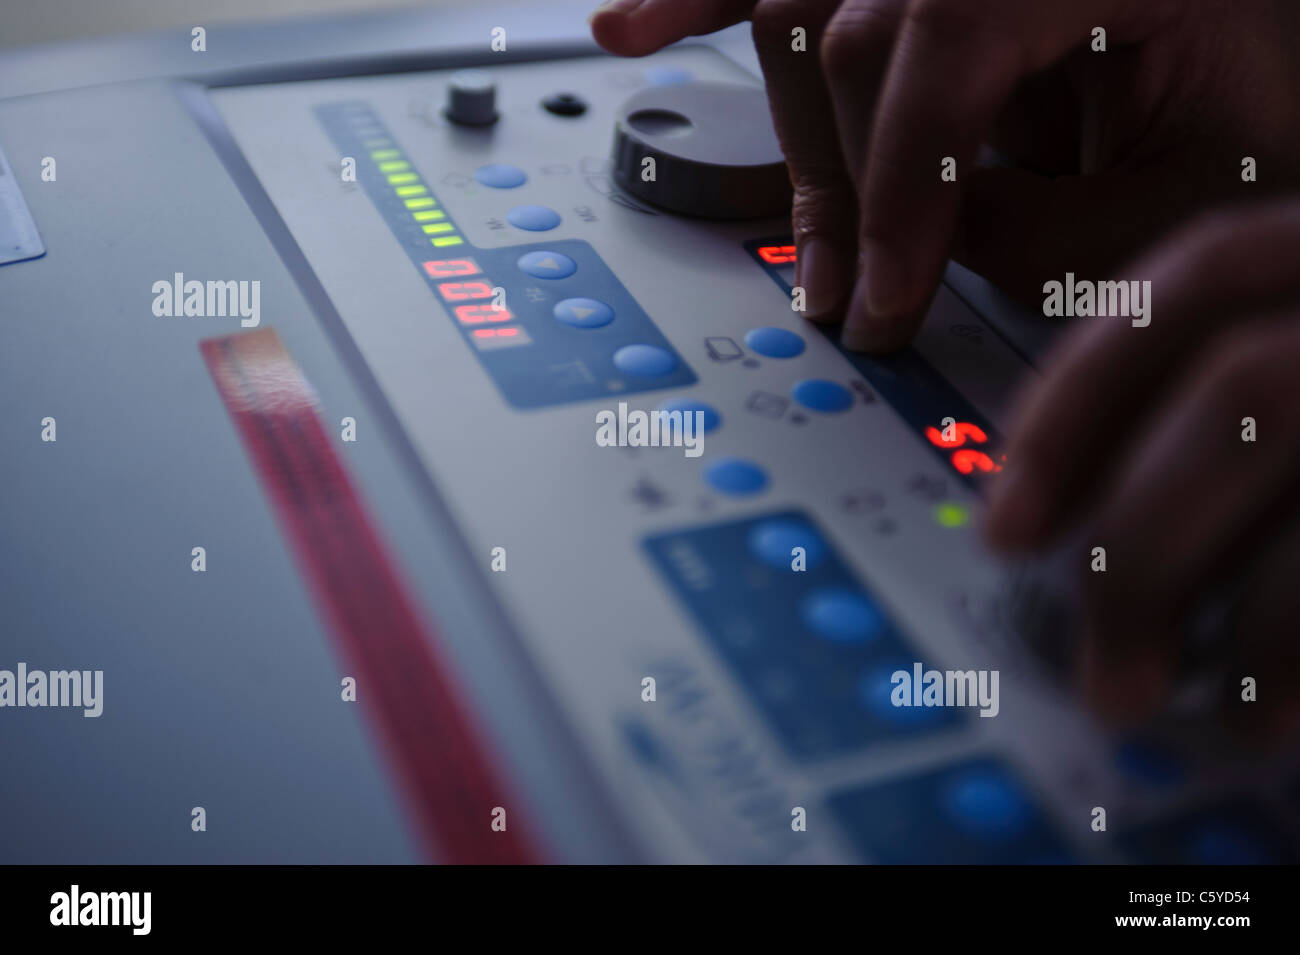 close up of audiology and deafness sound booth control panel with digital readout and knobs - Stock Image